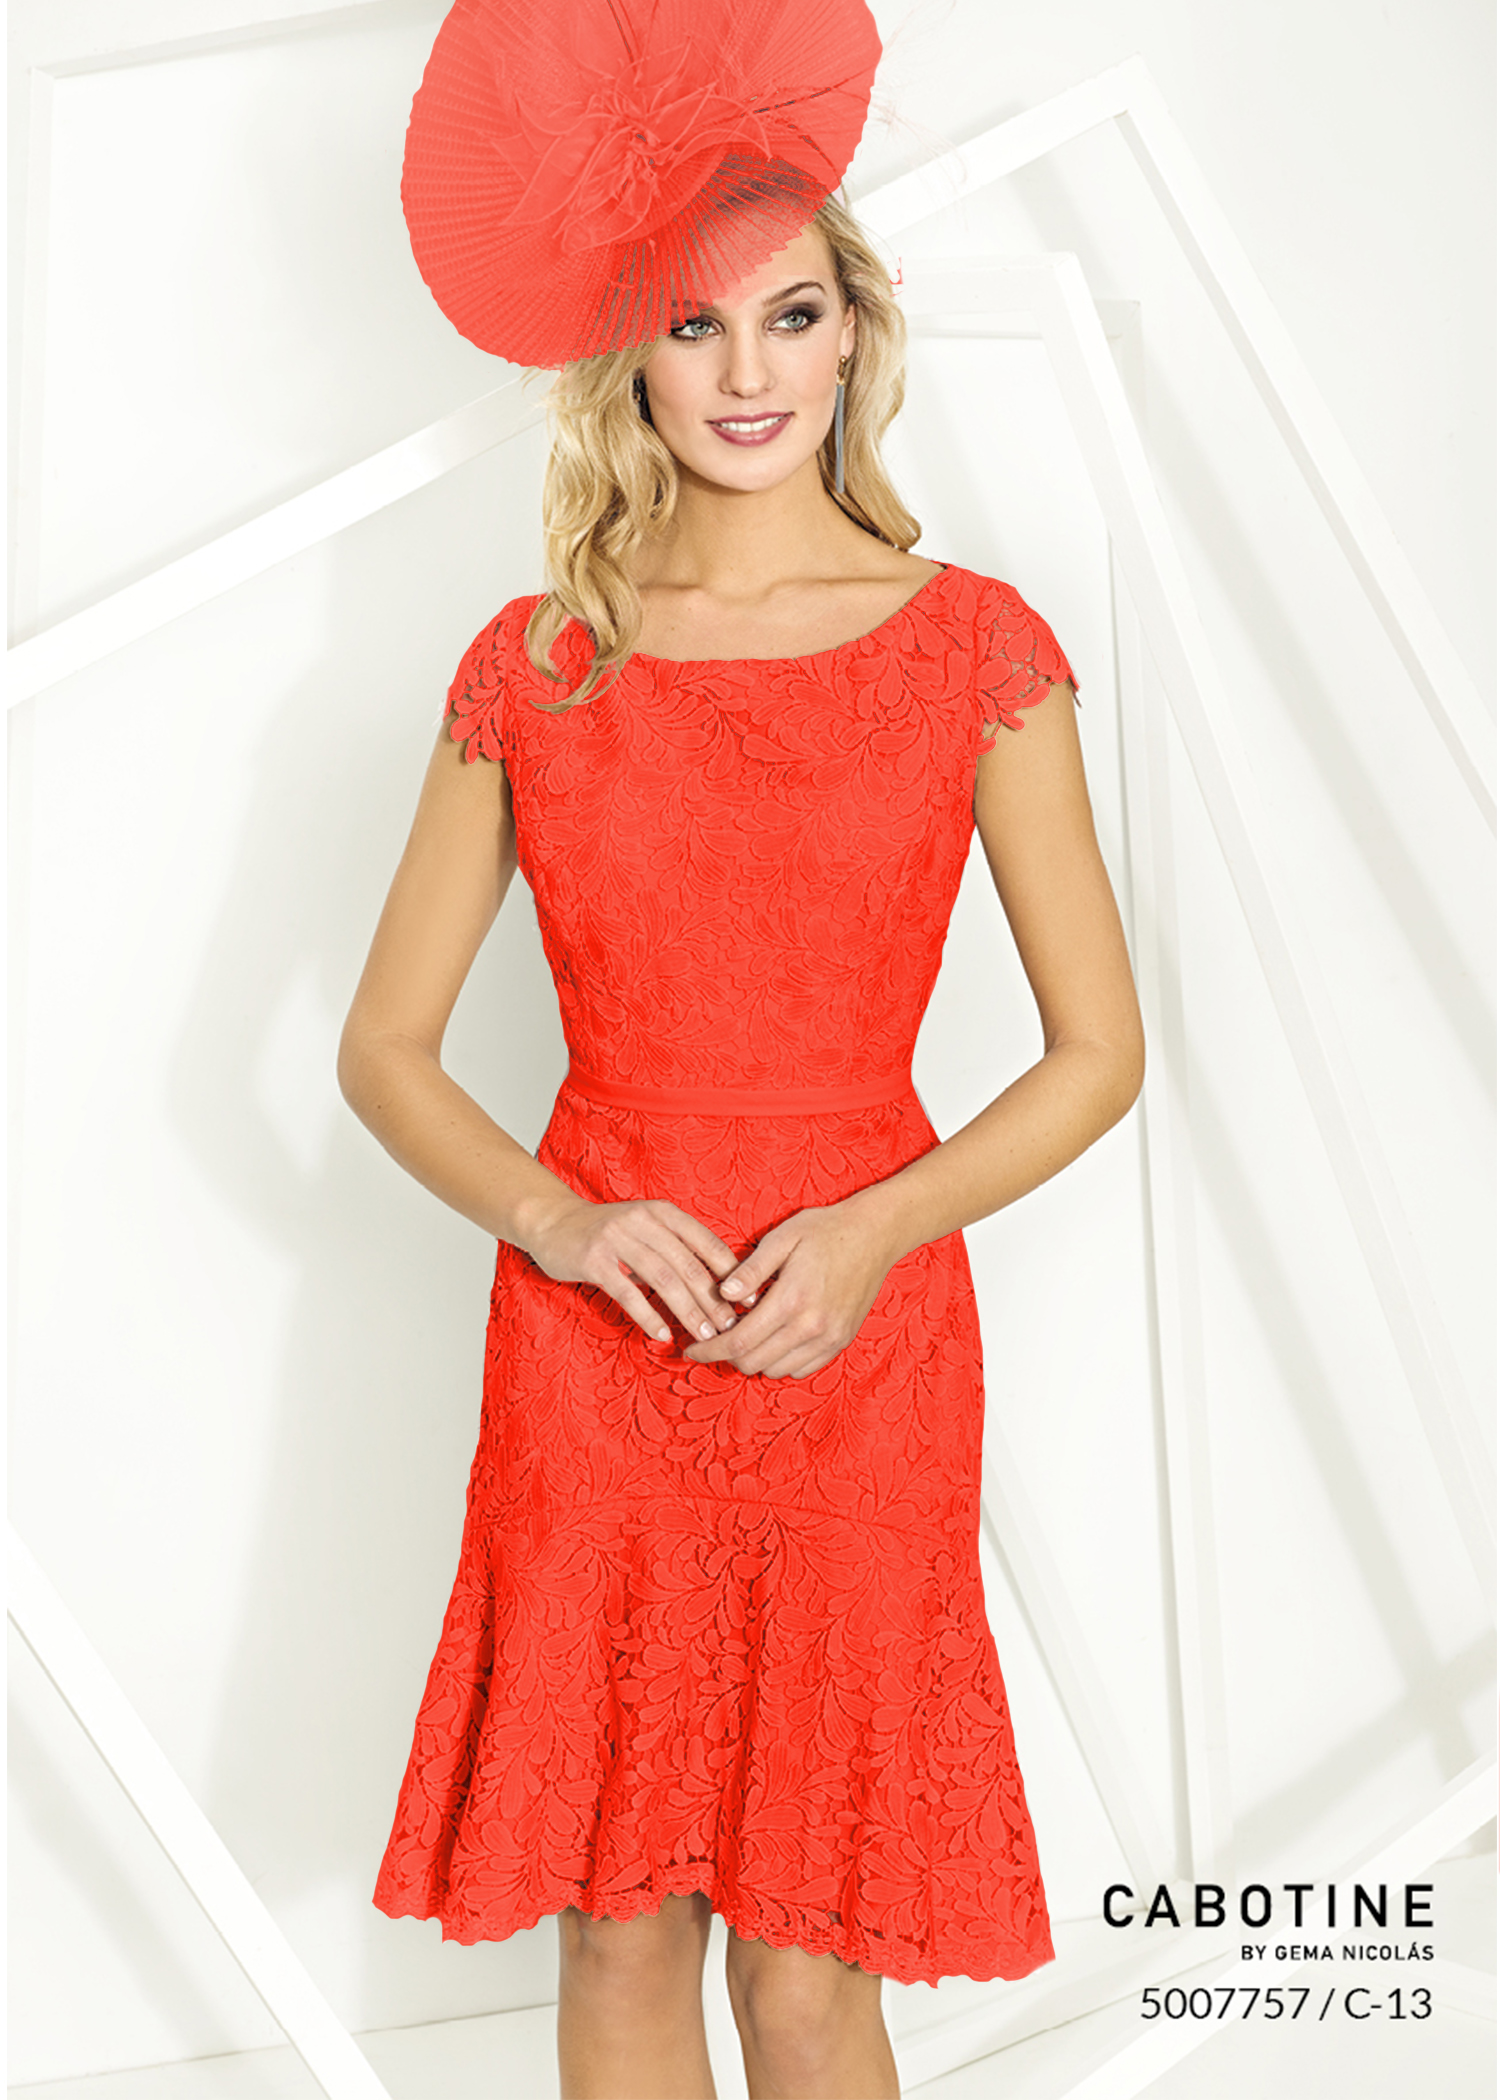 Cabotine Dress Jacket 5007757 Coral Mother Of The